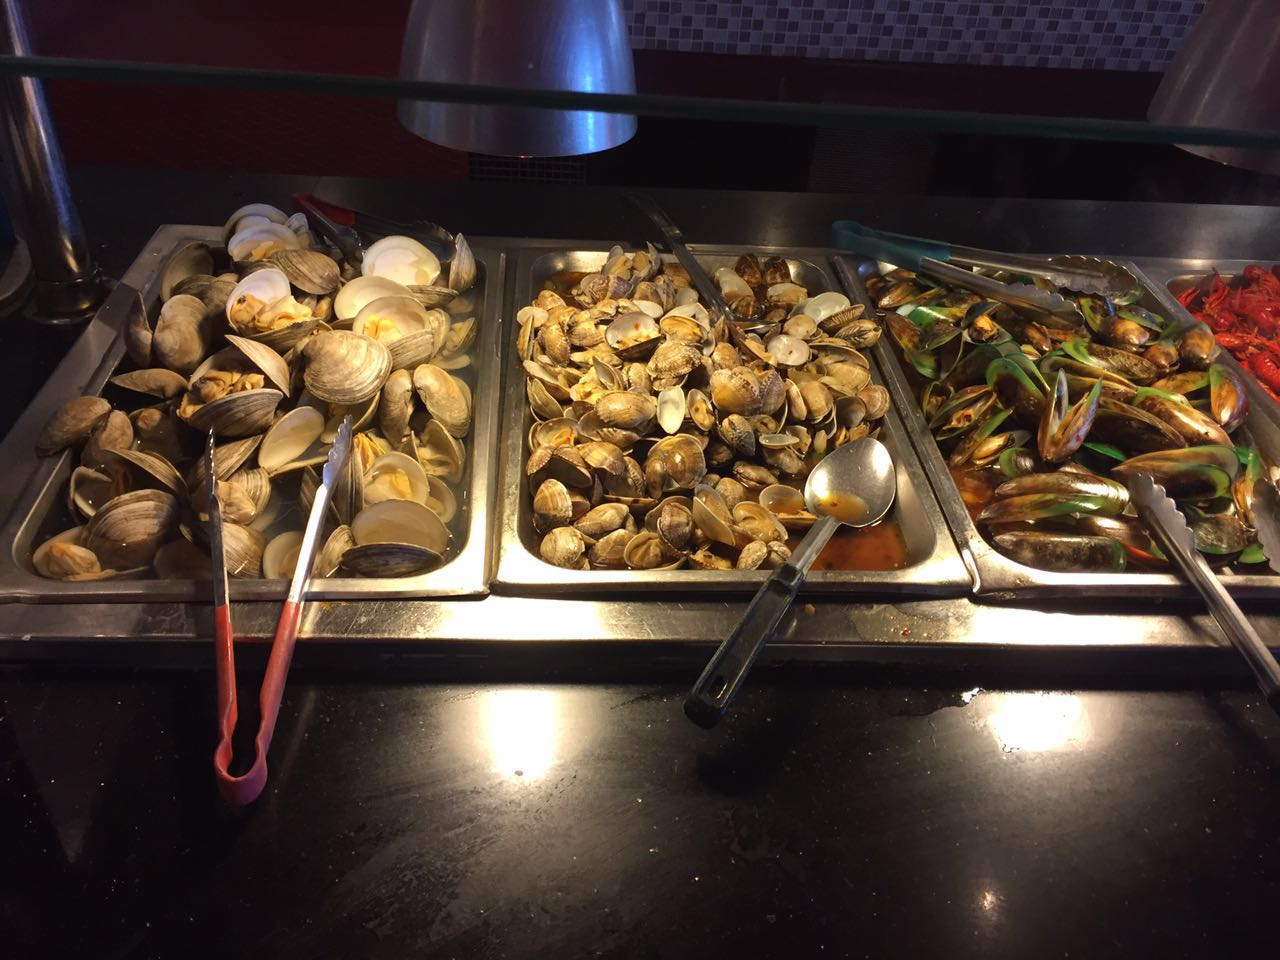 Fabulous Kumo Buffet Sushi Seafood Parma Cleveland Oh 44134 Home Interior And Landscaping Oversignezvosmurscom